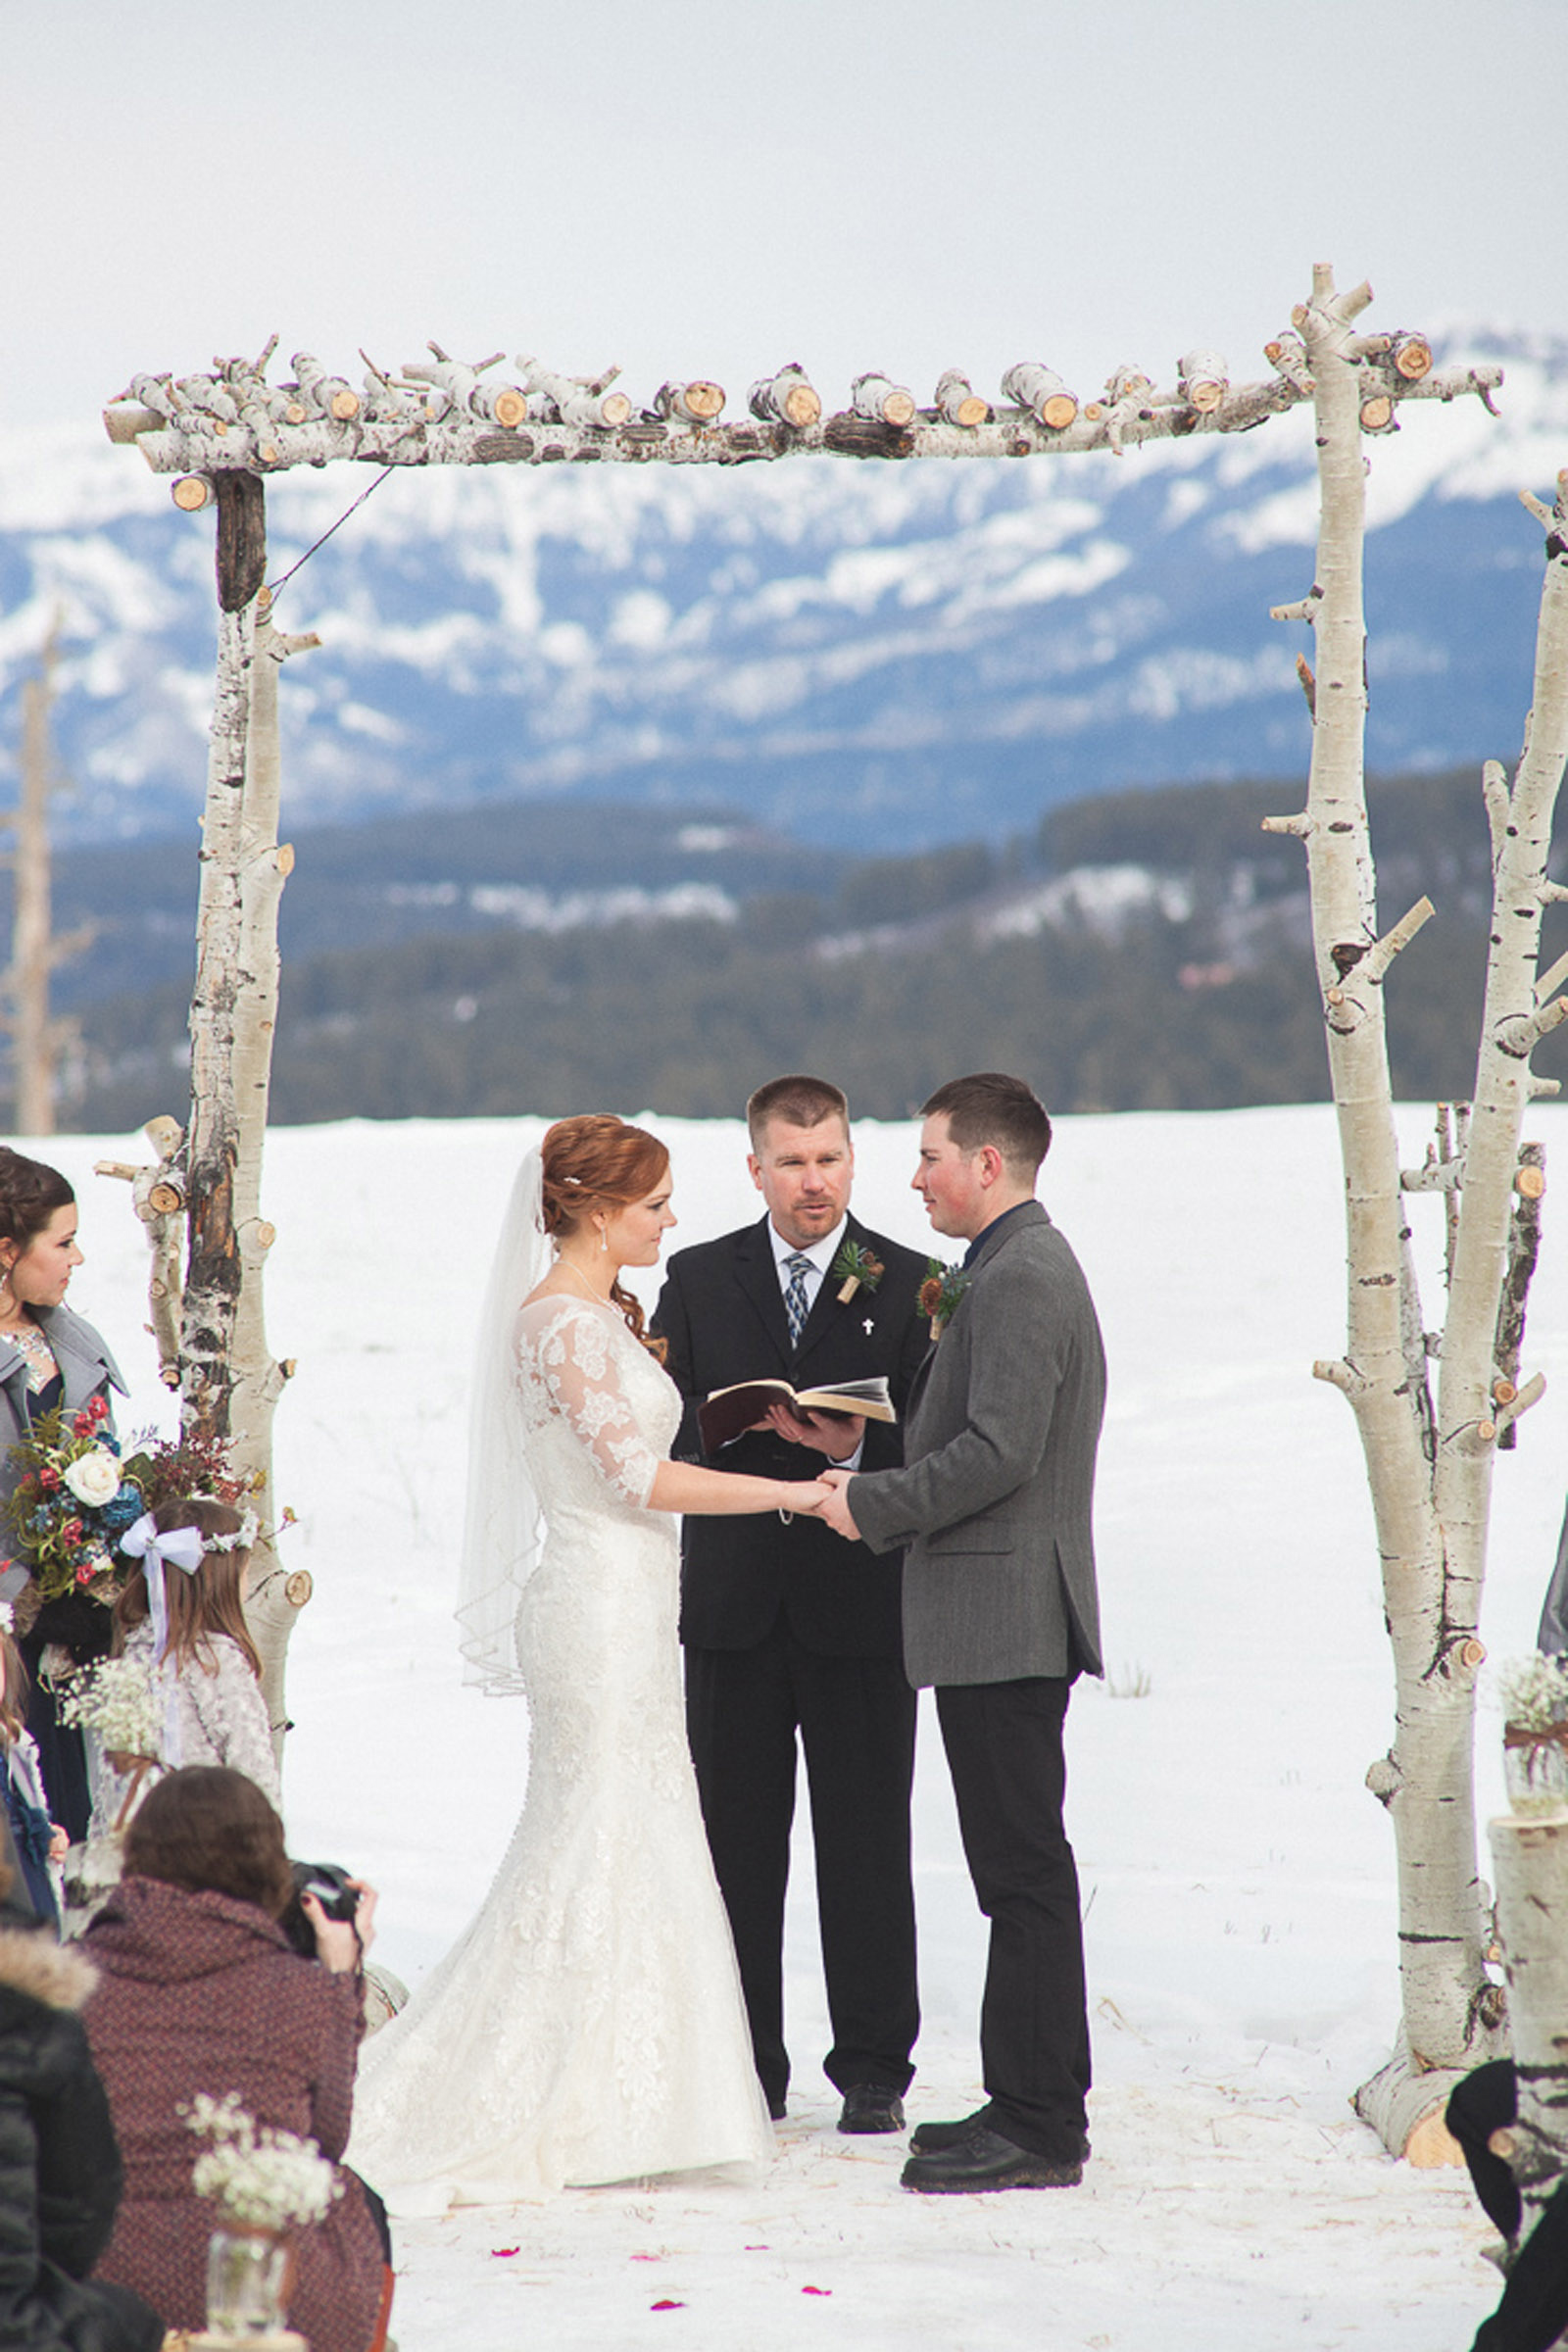 114-wedding-ceremony-in-pagosa-springs-wedding-photographer-snow-winter-wedding